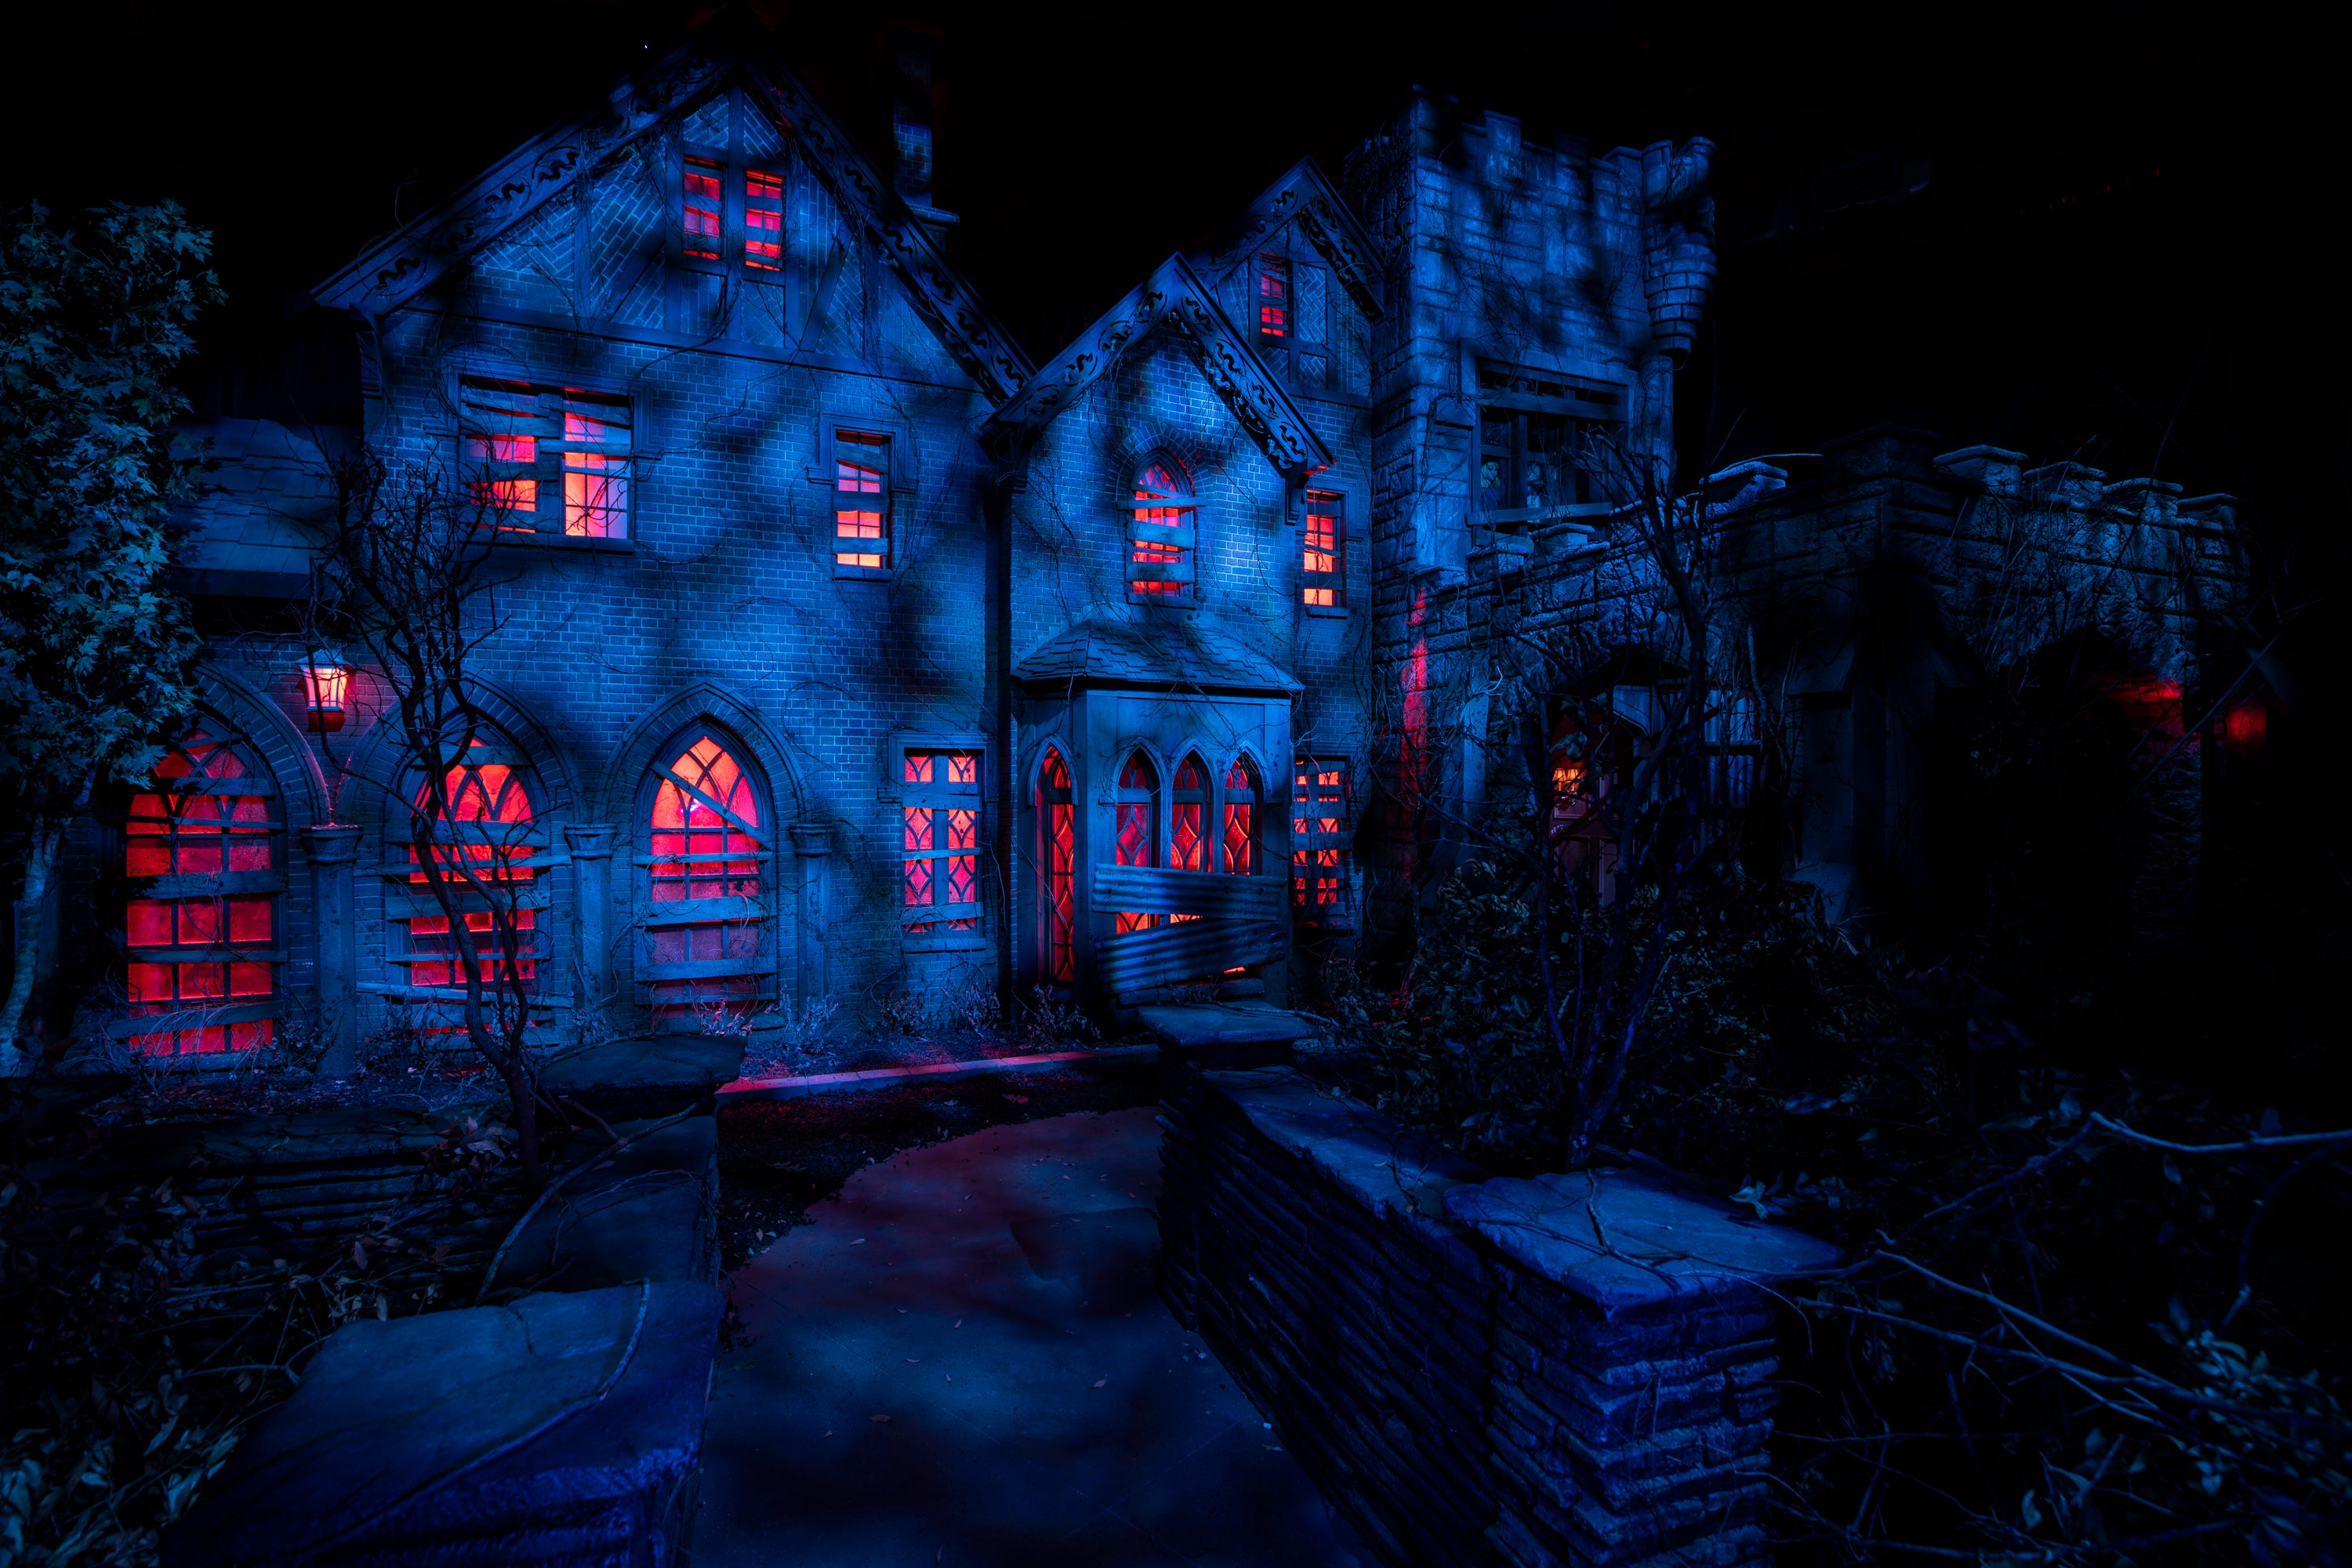 'It's a nightmare come true': Halloween Horror Nights return to Universal theme parks